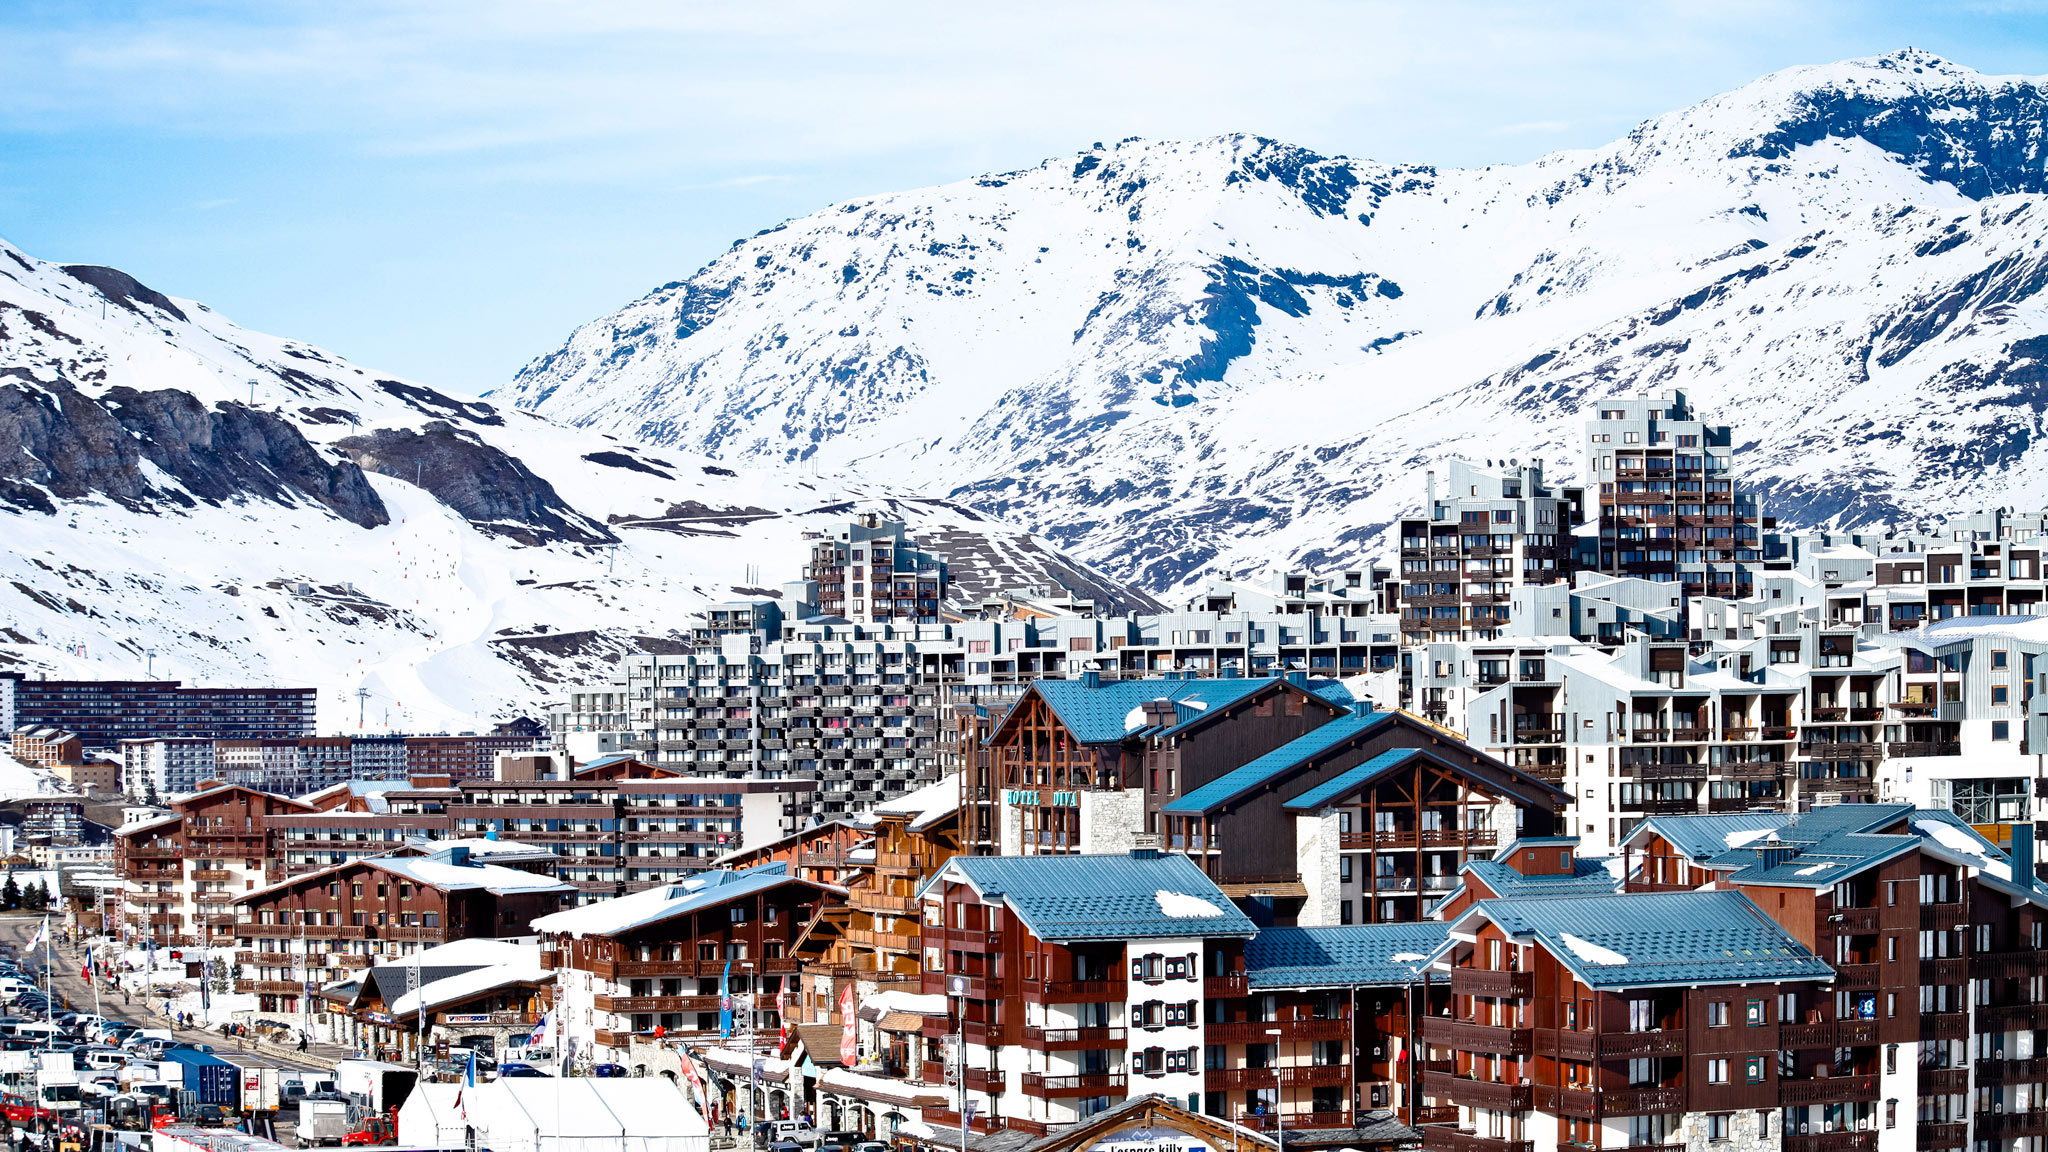 Big world   france urban buildings in the ski resort of tignes  france 073325